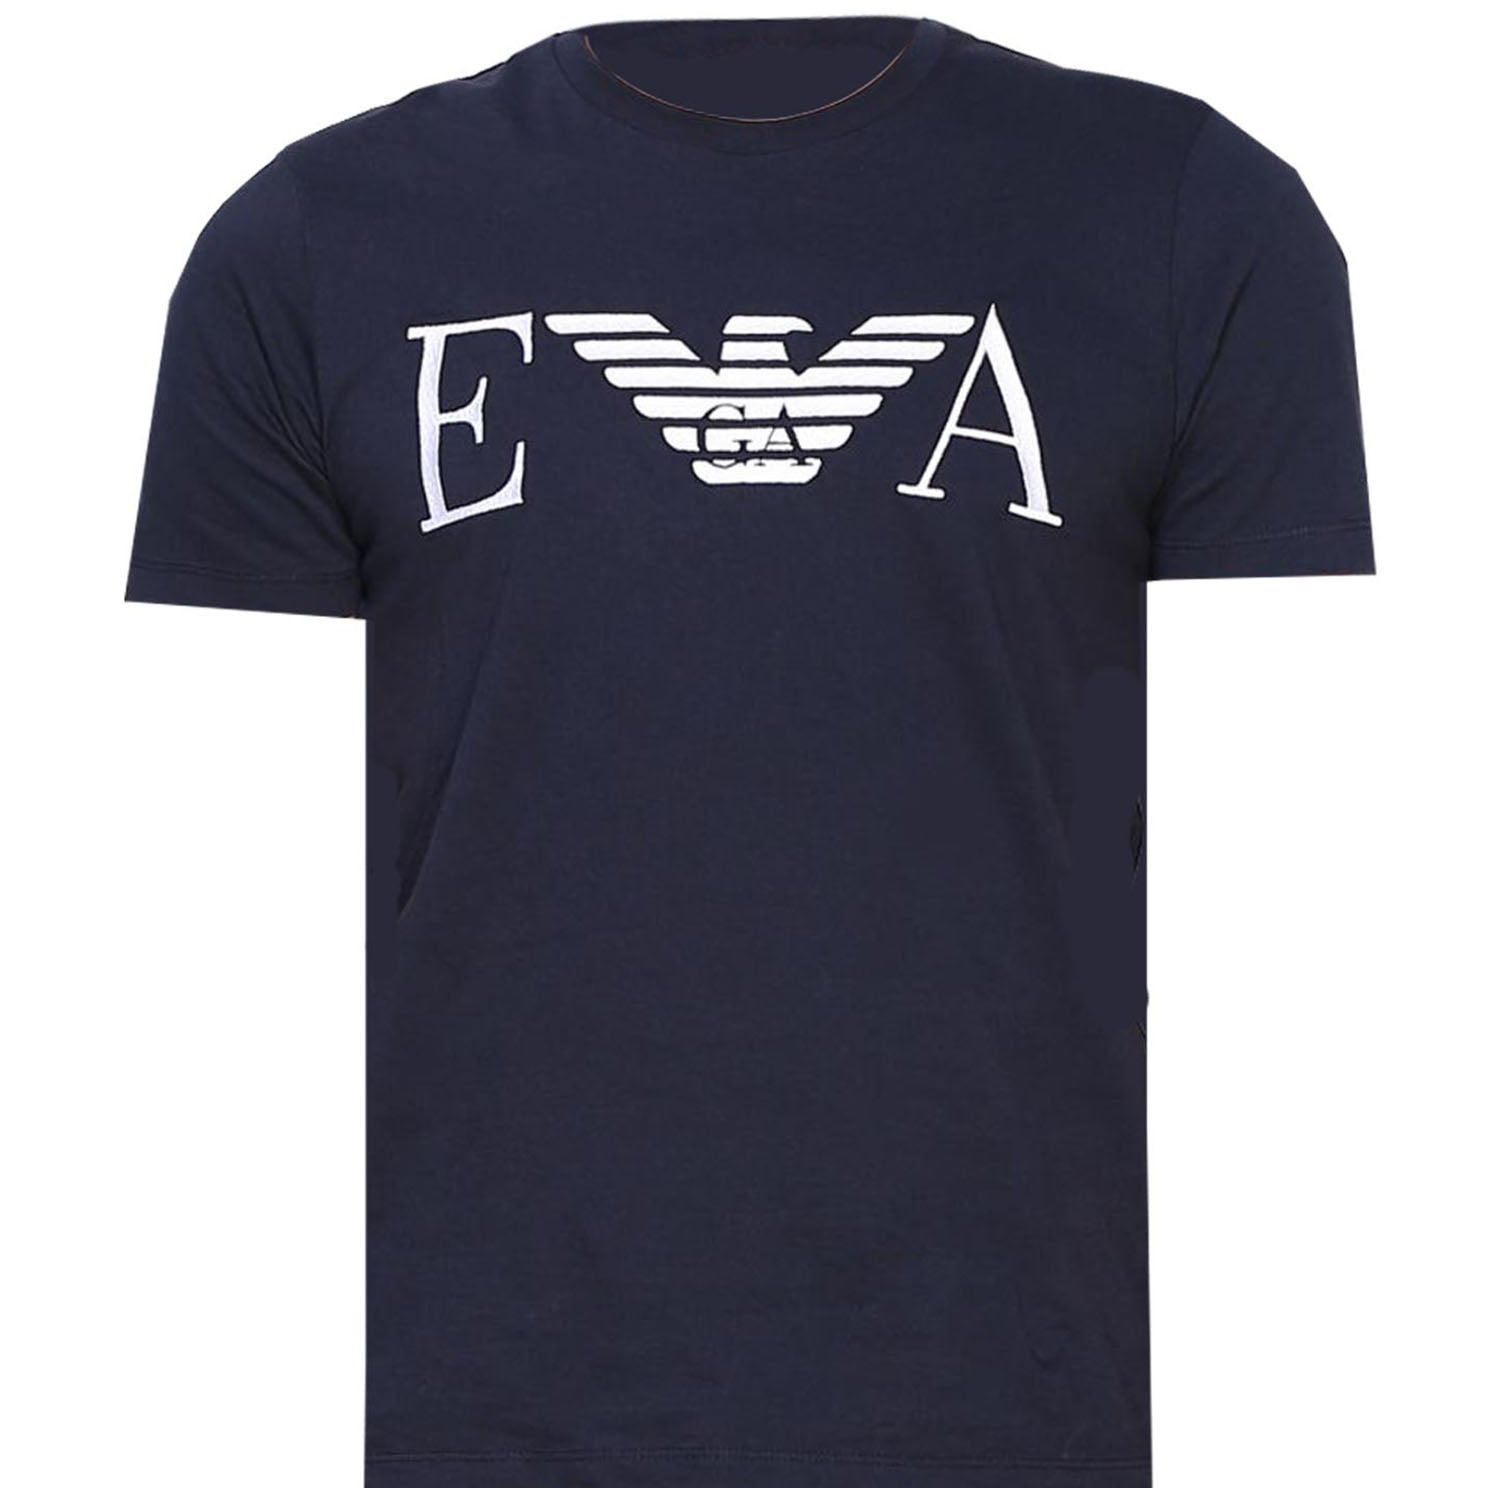 Emporio Armani Embroidered T-Shirt Navy